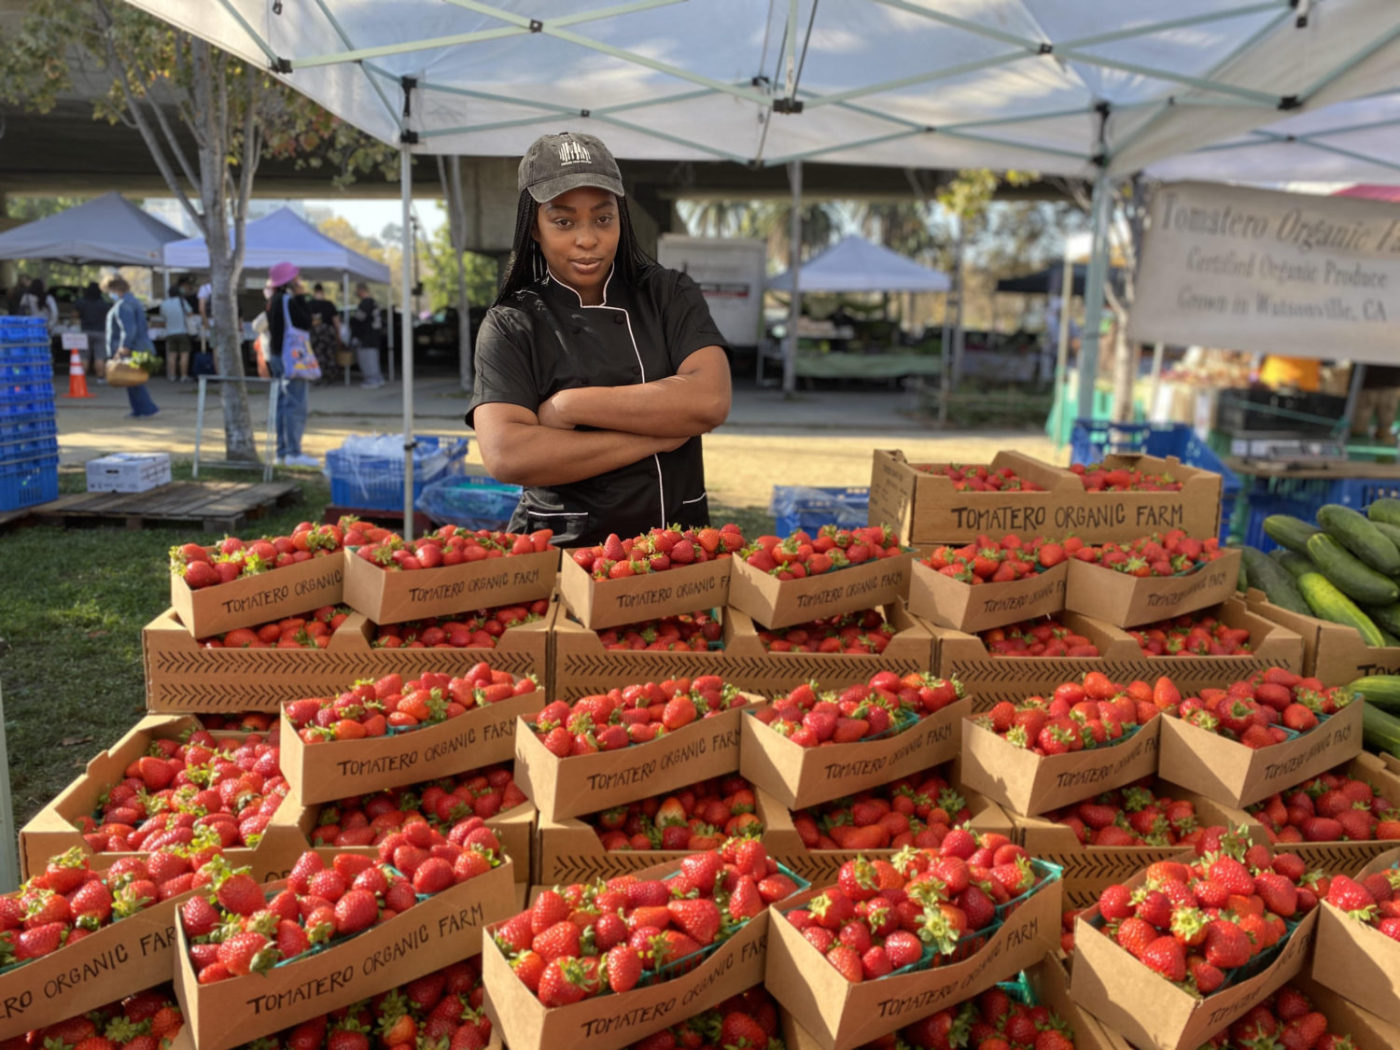 Chef-Erin-Williams-WeFeastSF-checks-out-Tomatero-Farm-strawberries-1-1400x1050, WeFeastSF: Bayview native Chef E. cooks up fresh Creole and Southern food for the community, Culture Currents